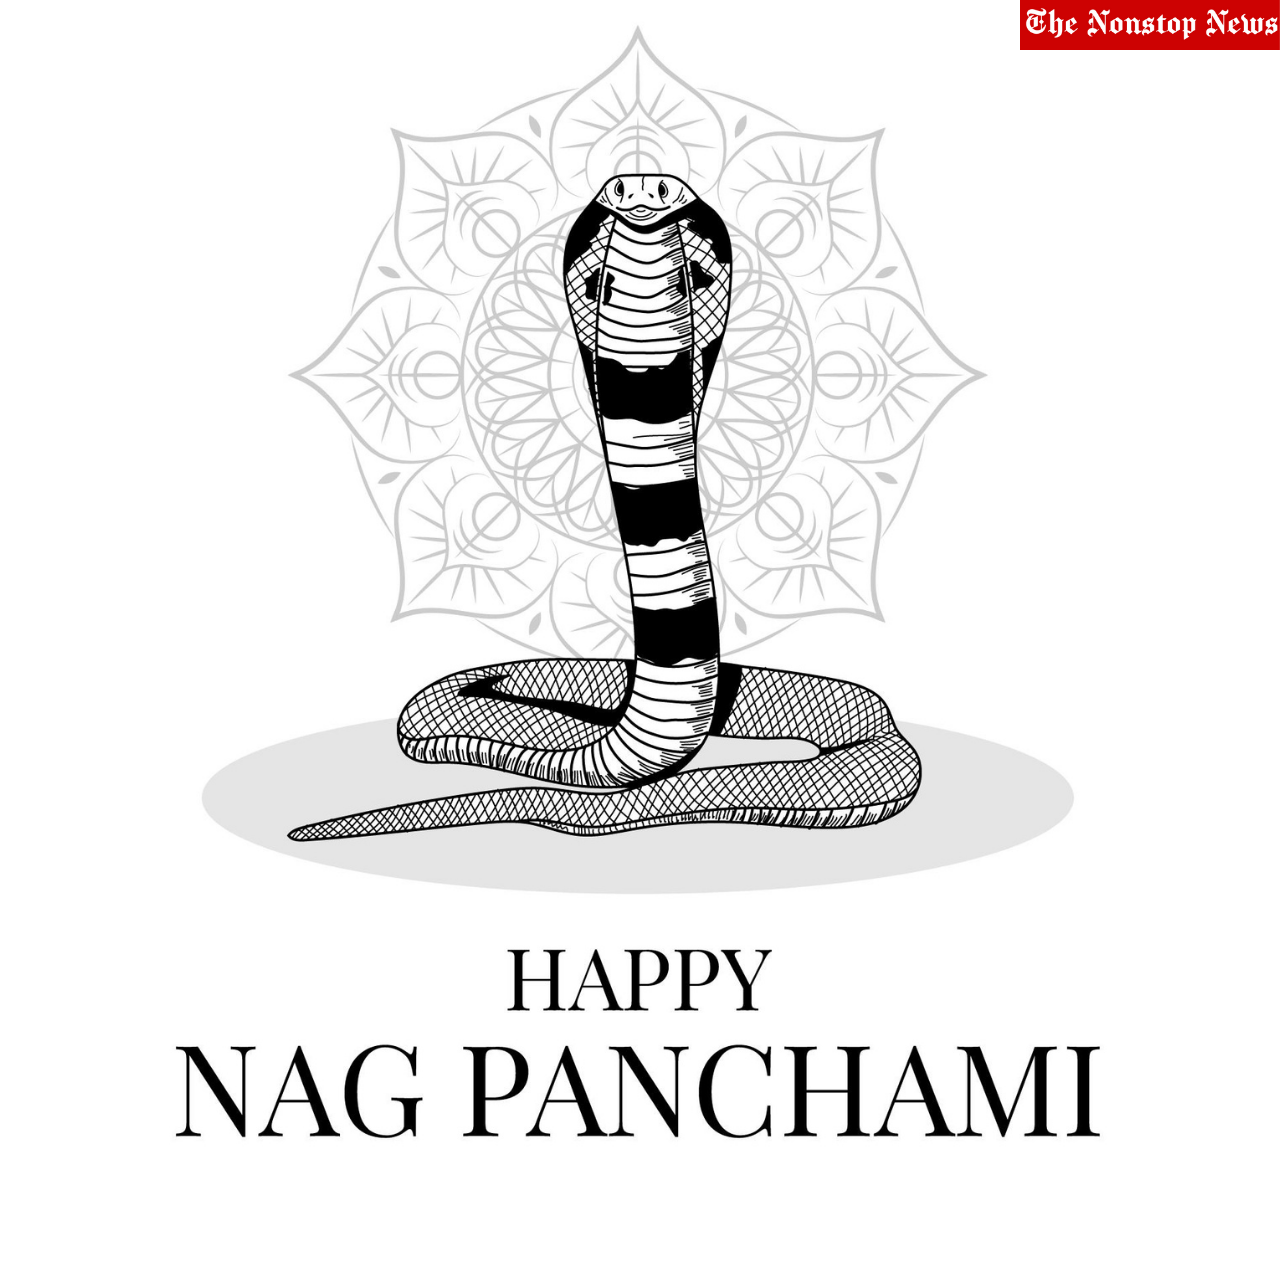 Nag Panchami 2021 Wishes and Greetings: Status, Messages, Quotes, HD Images, Wallpaper, and Poster to greet your Loved Ones